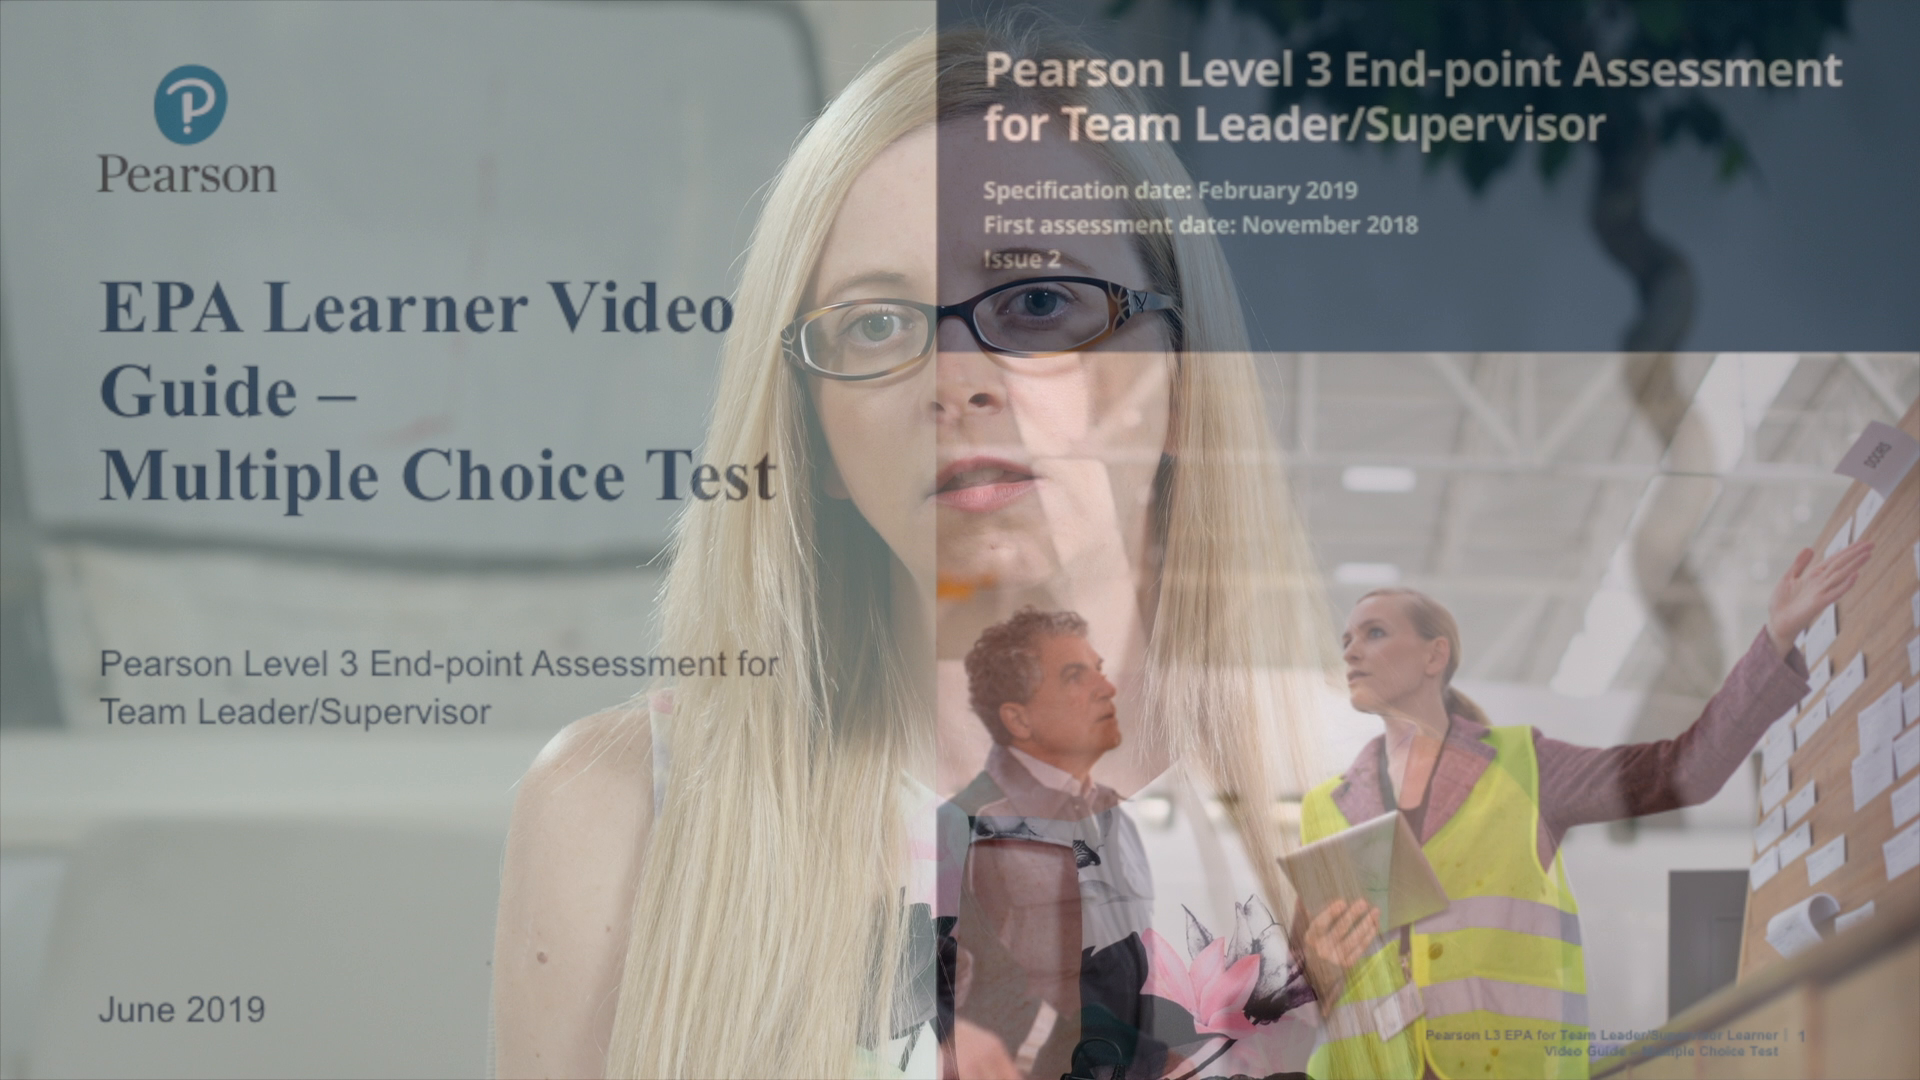 Pearson EPA Learner Video Guide: Team Leader - Multiple Choice Test